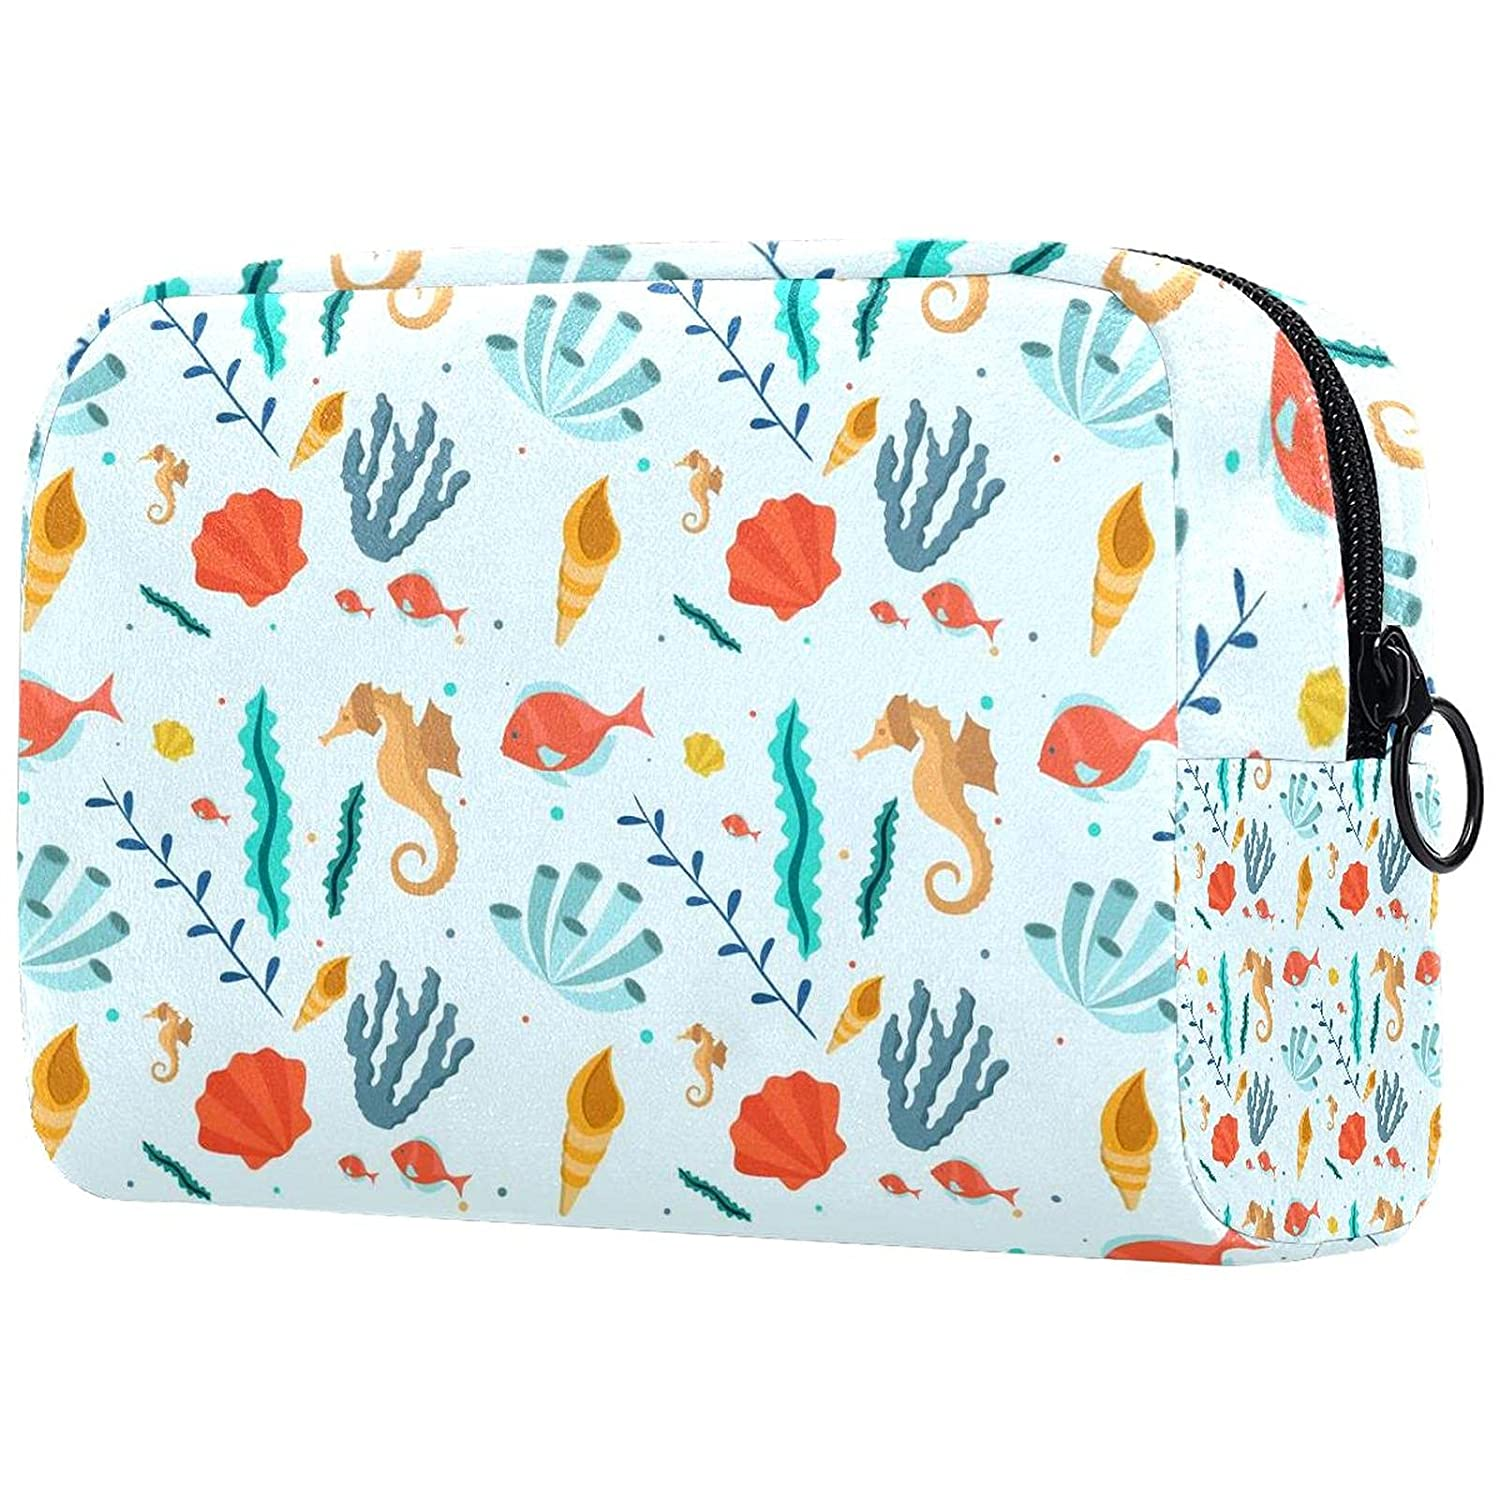 Travel Direct sale of Discount is also underway manufacturer Toiletry Bag Waterproof for Bags Wo